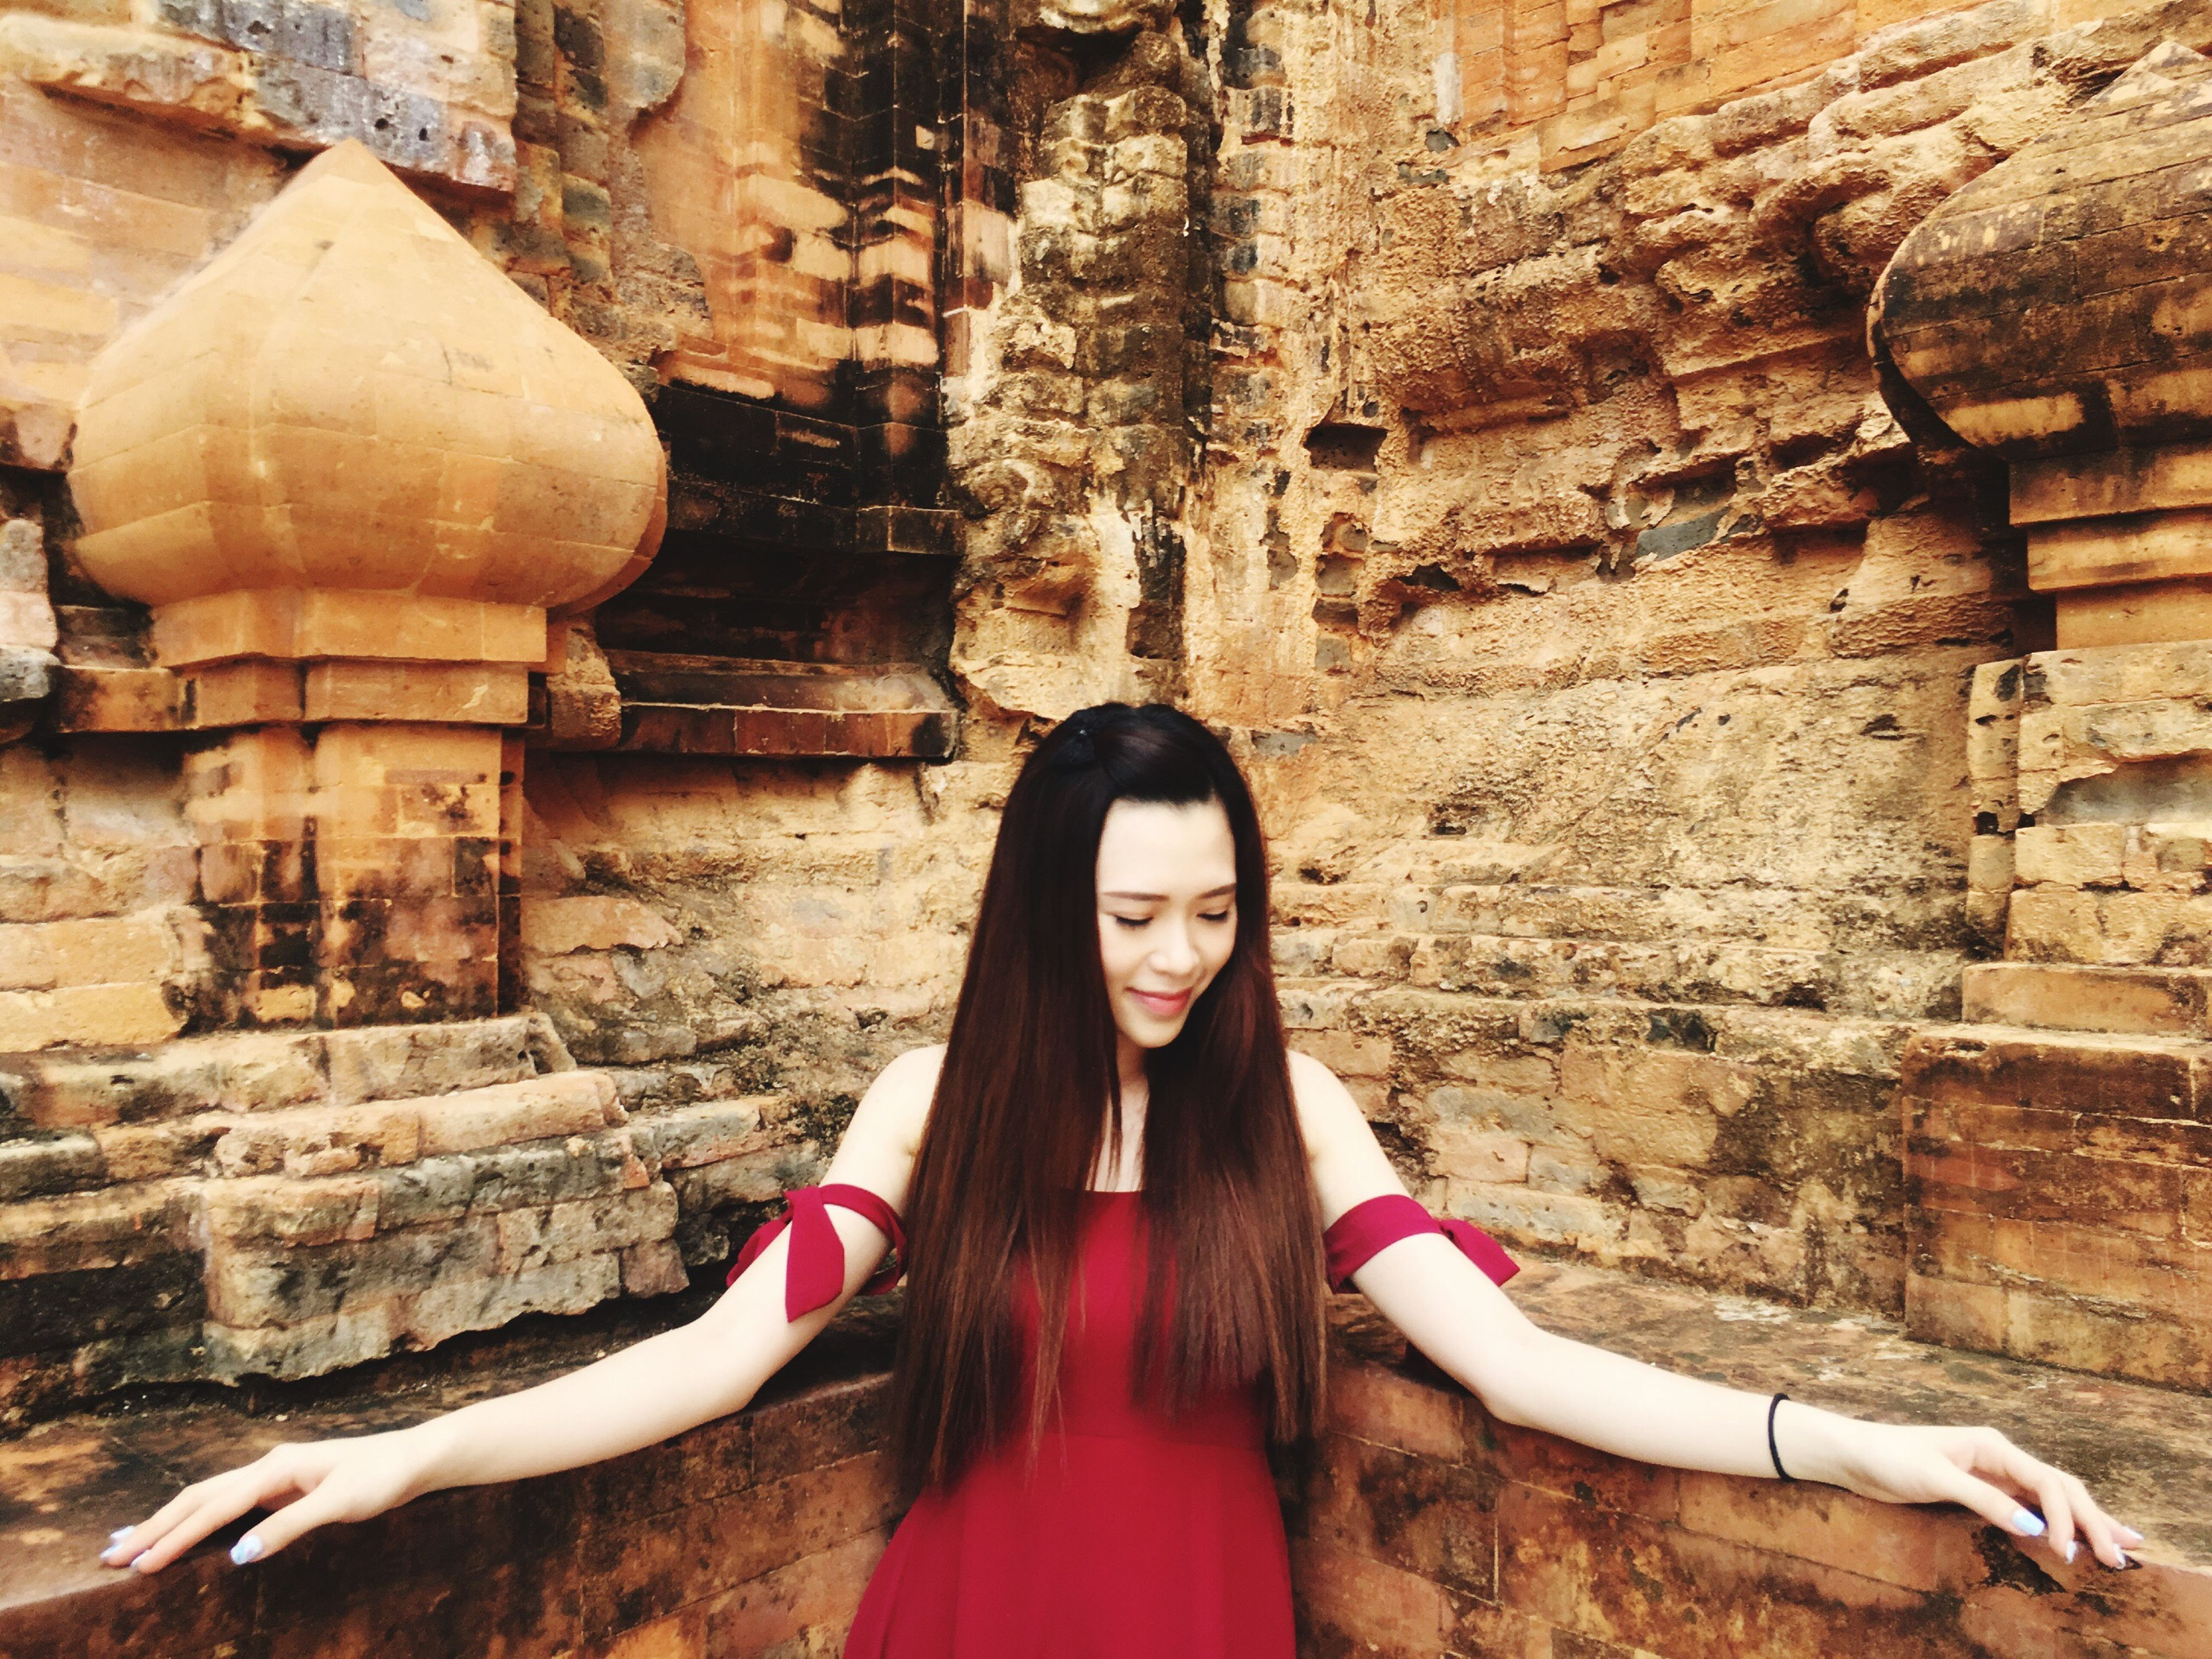 young adult, architecture, young women, built structure, wall - building feature, building exterior, long hair, person, casual clothing, history, beauty, outdoors, red, famous place, ancient